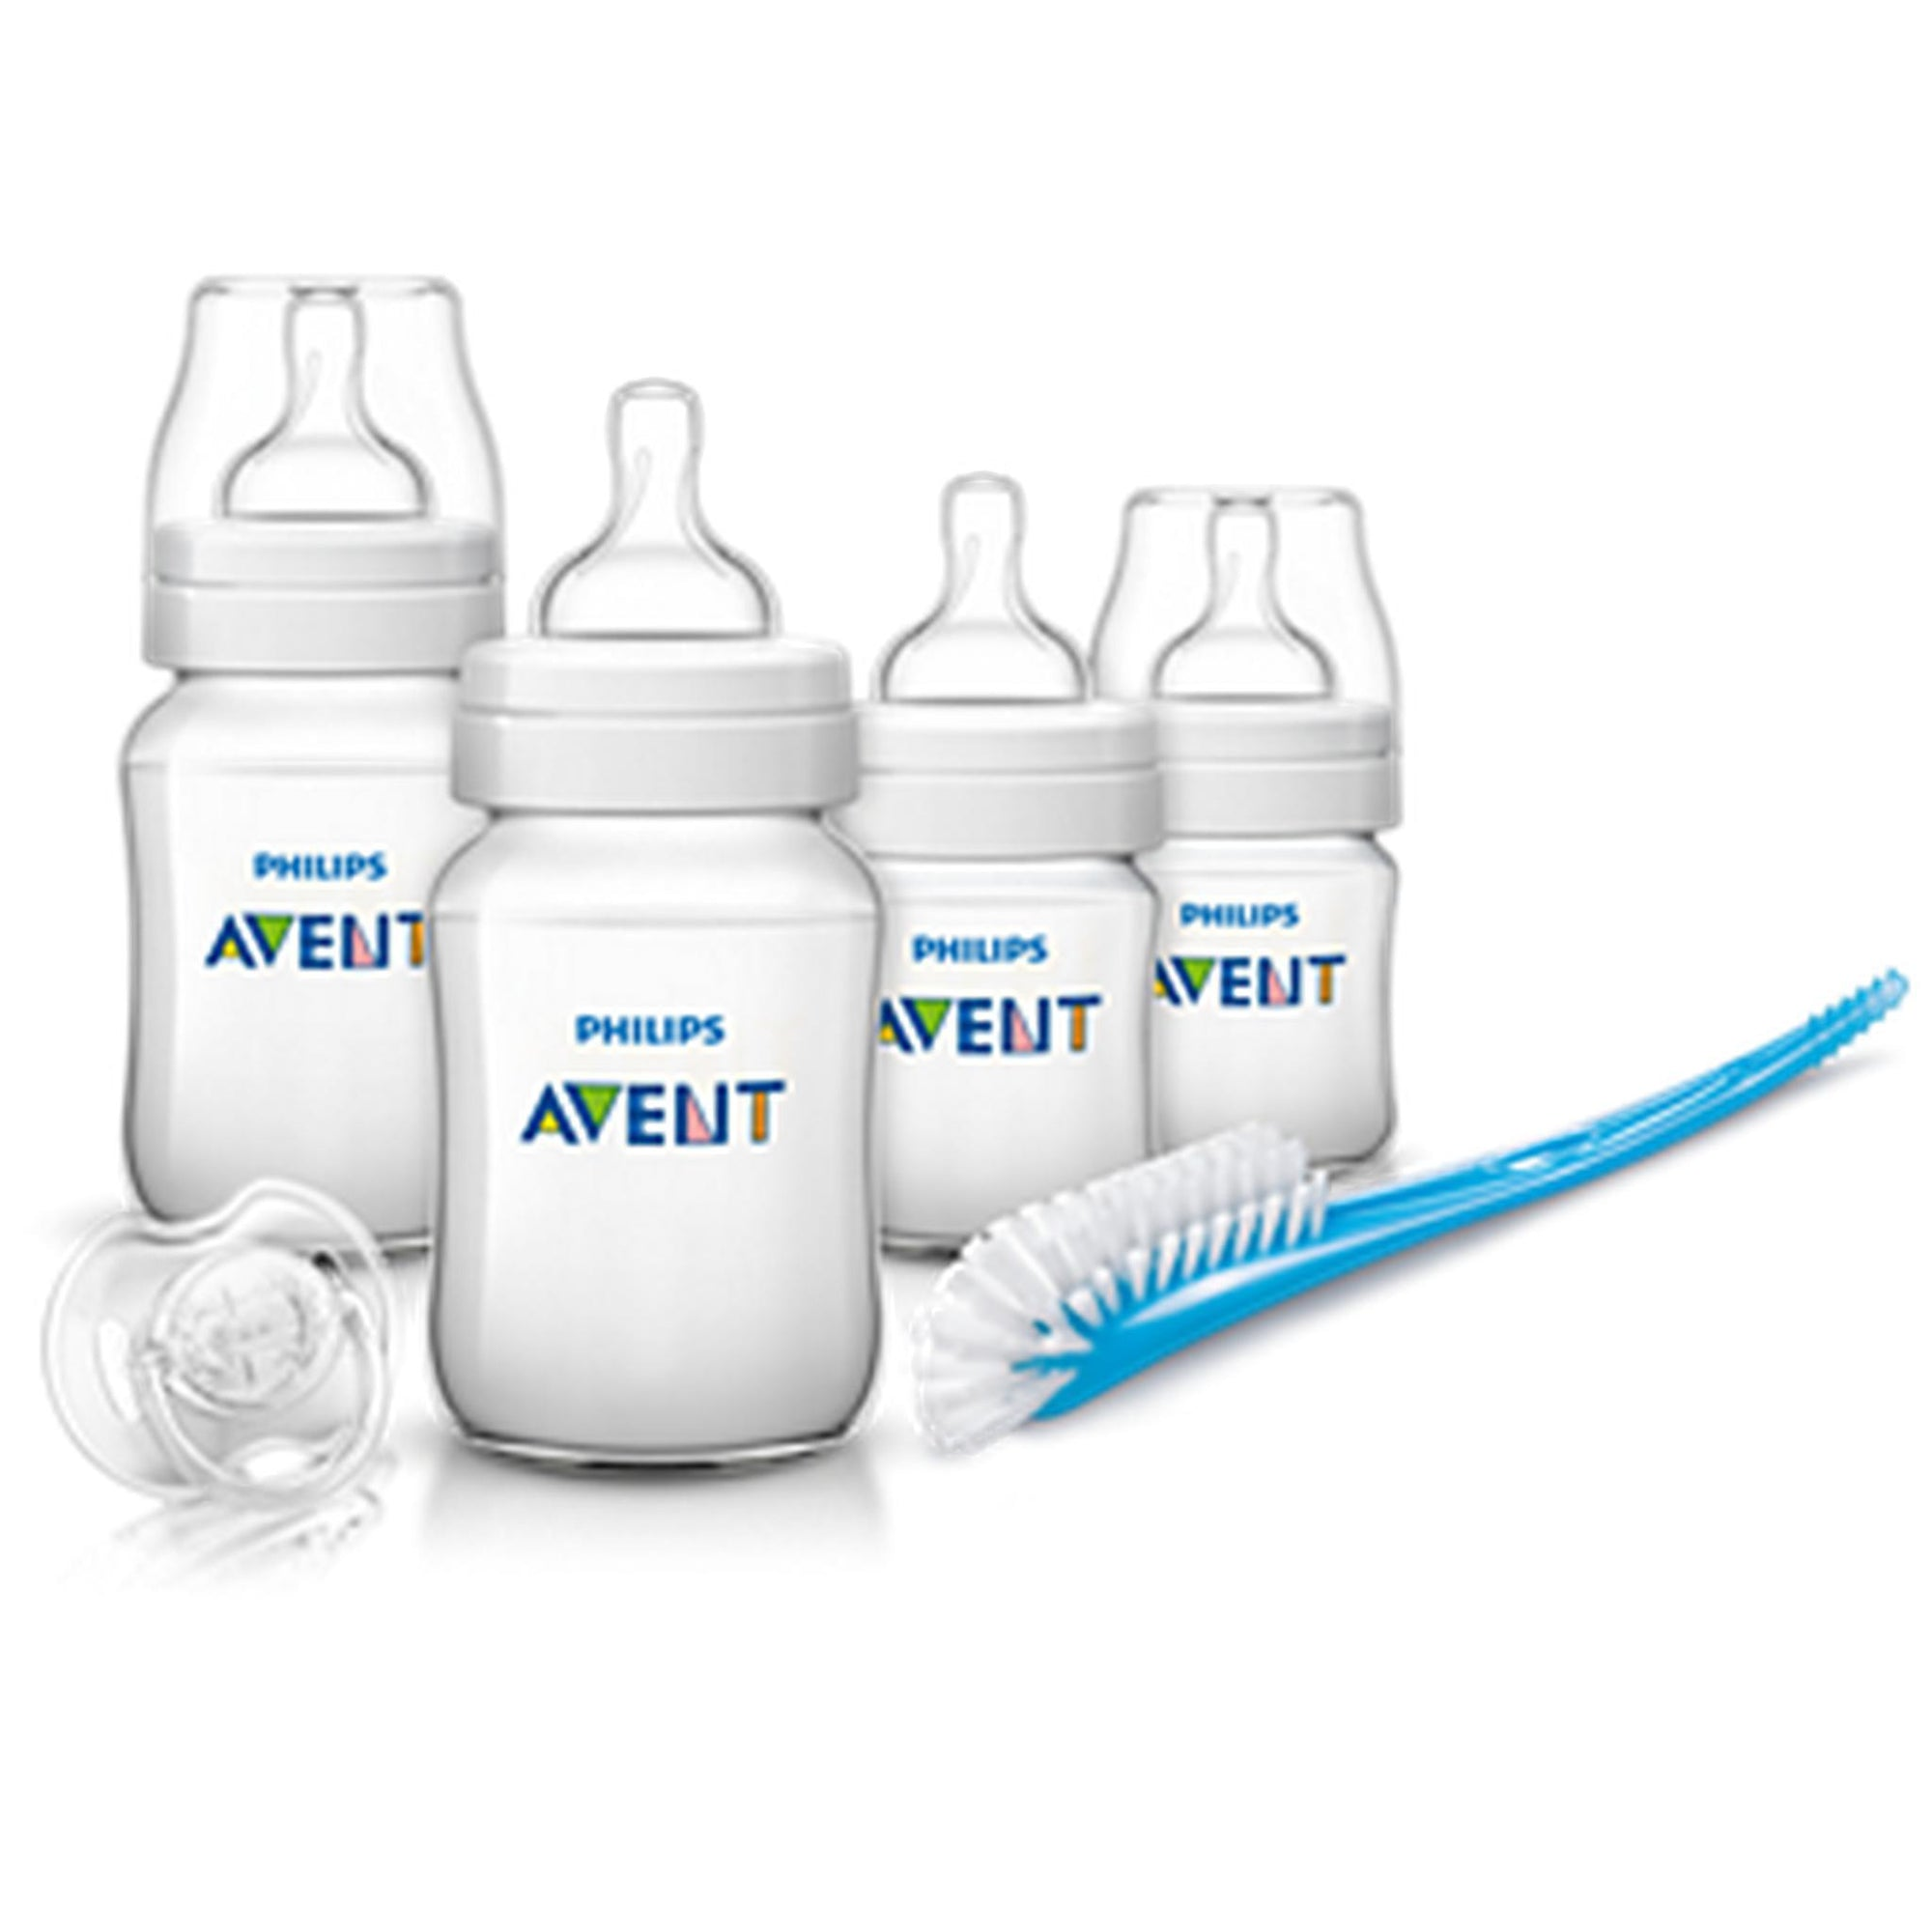 Avent Newborn Starter Set Classic-Feeding Starter and Gift Sets-Mother and Baby Shop Kenya's #1 Online Baby Shop